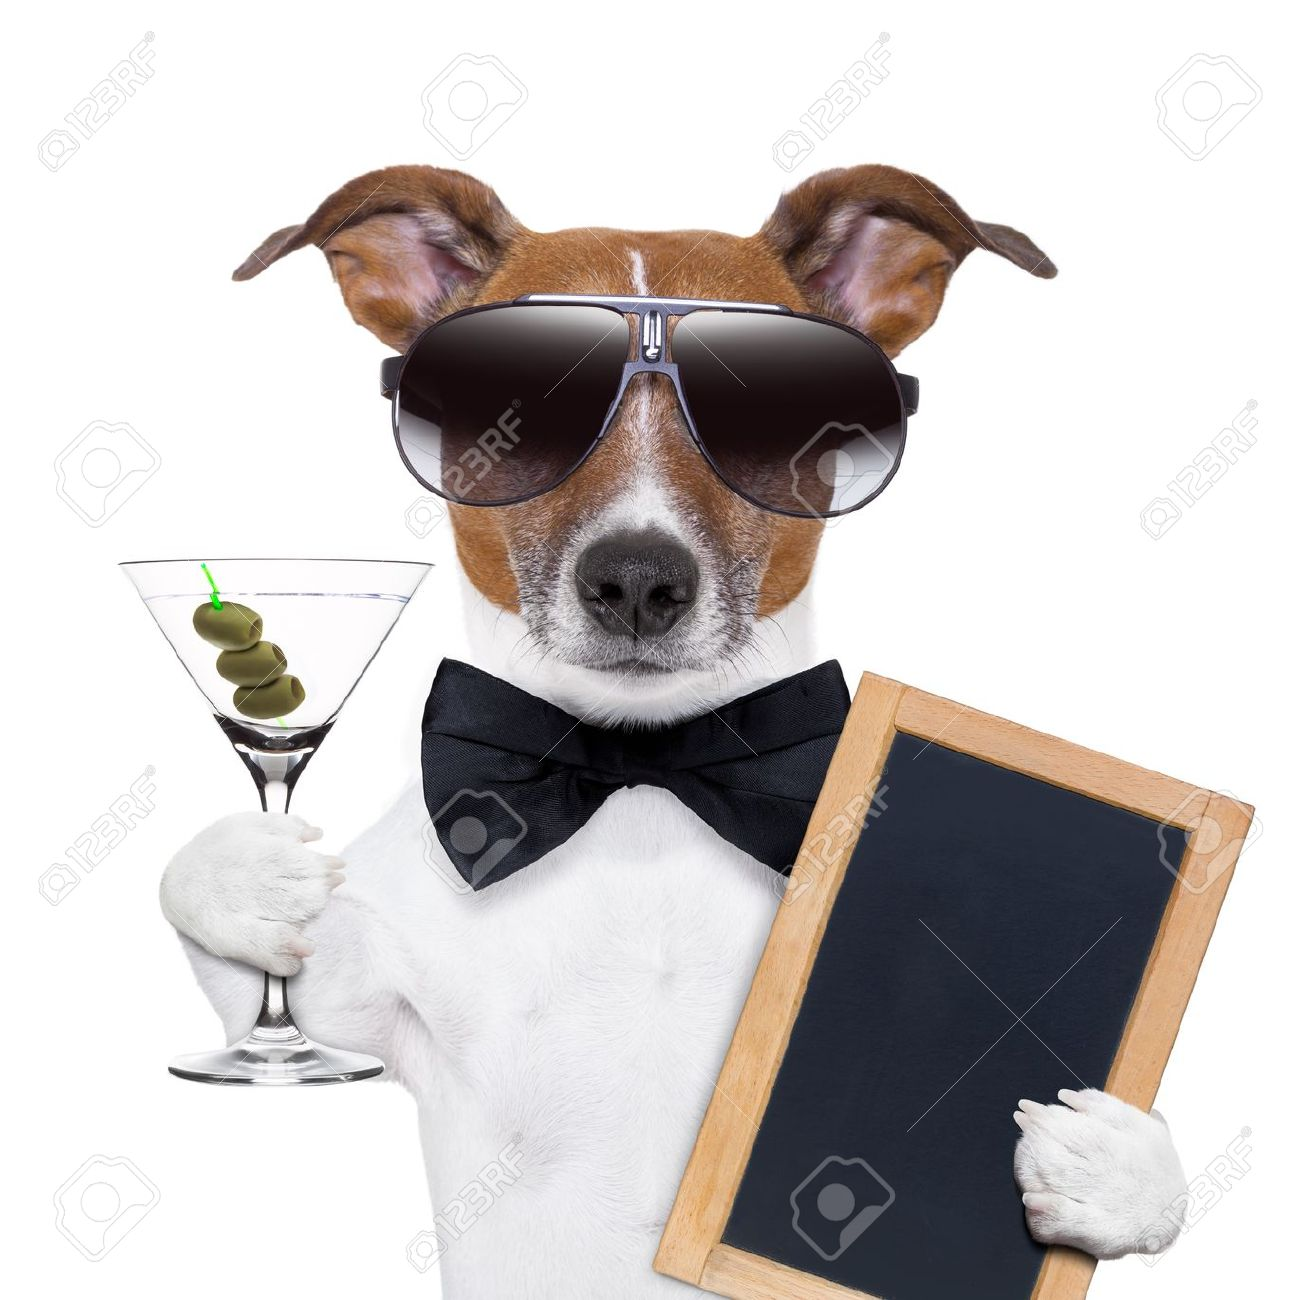 party dog toasting with a martini glass with olives Stock Photo - 20102683